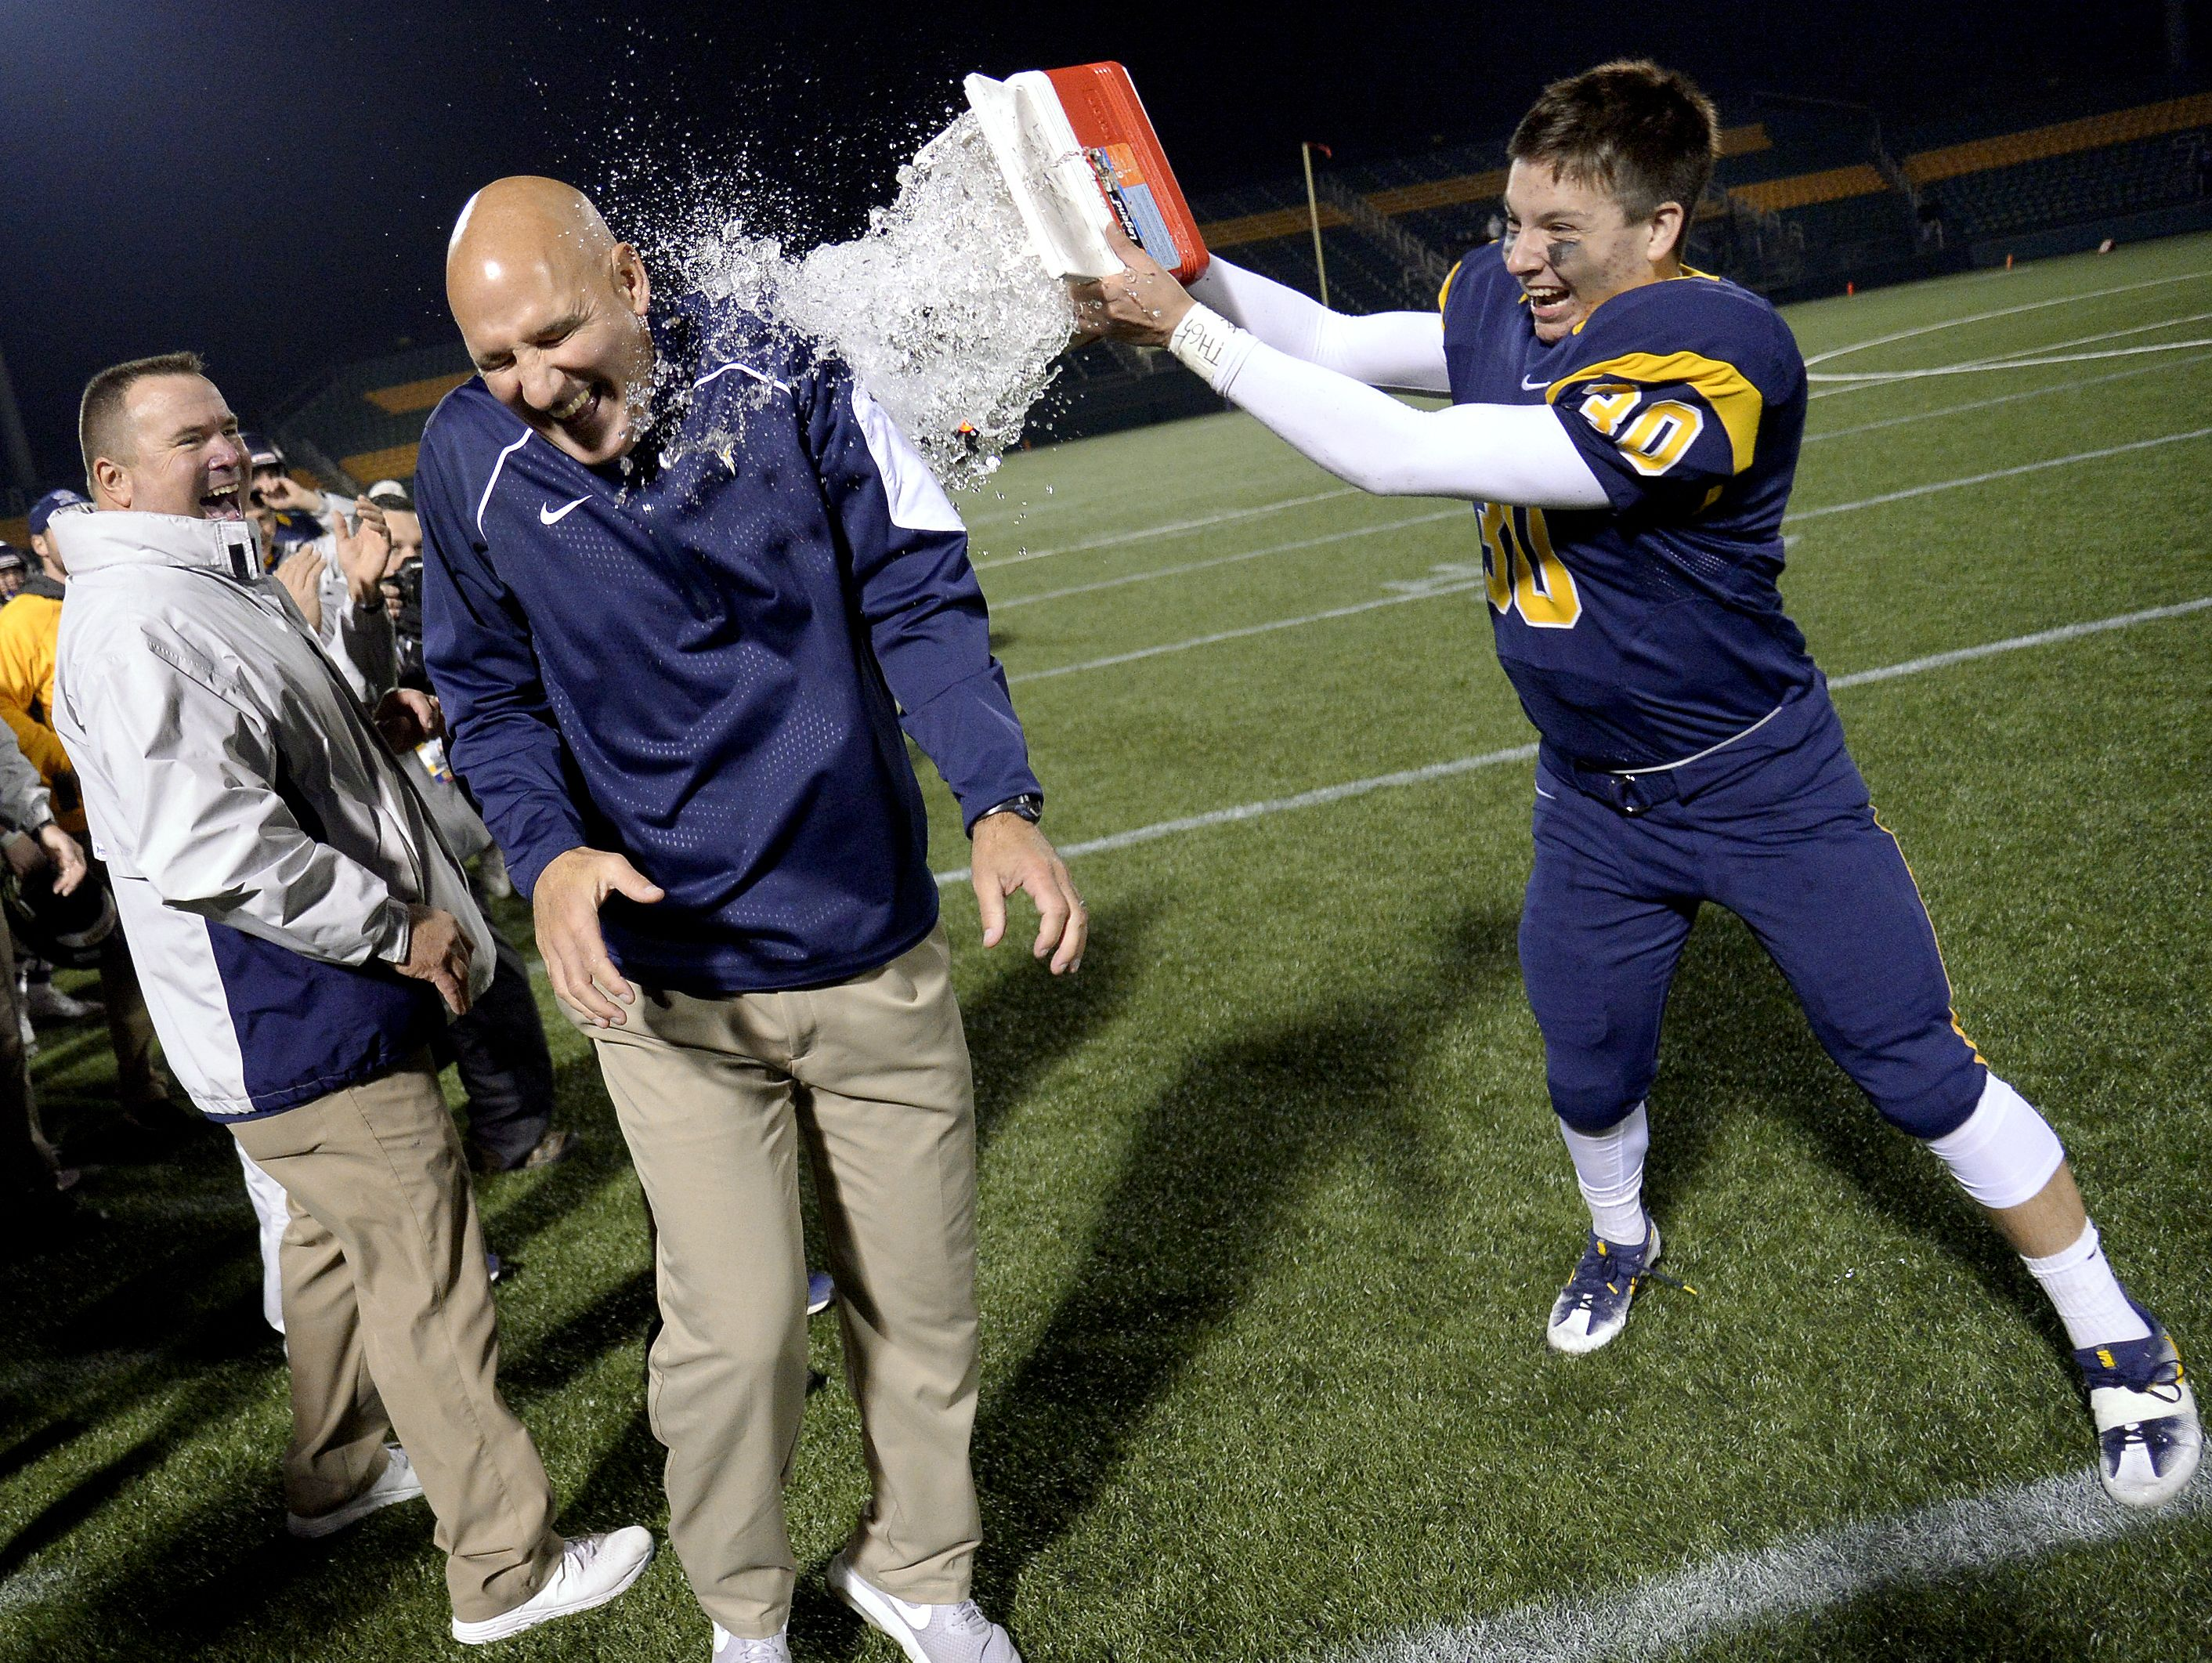 Victor head coach Geoff Mandile, left, gets doused with water by James Caggiano during the Section V Class AA final at Rhinos Stadium on Nov. 5, 2016. No. 1 seed Victor won the Class AA title with a 23-7 win over No. 2 seed Pittsford.